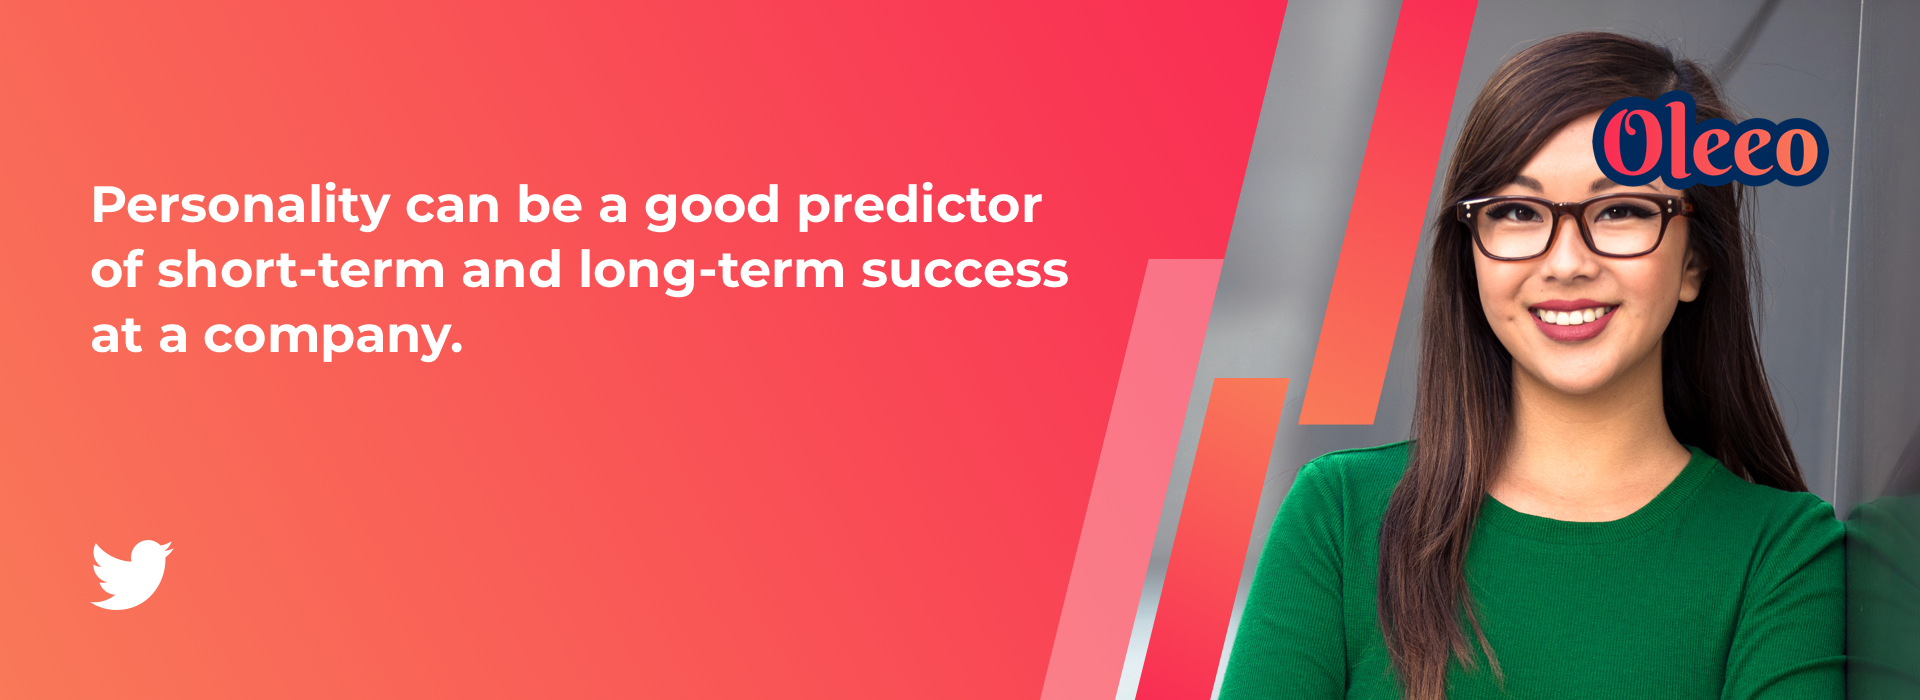 Personality can be a good predictor of short-term and long-term success at a company.